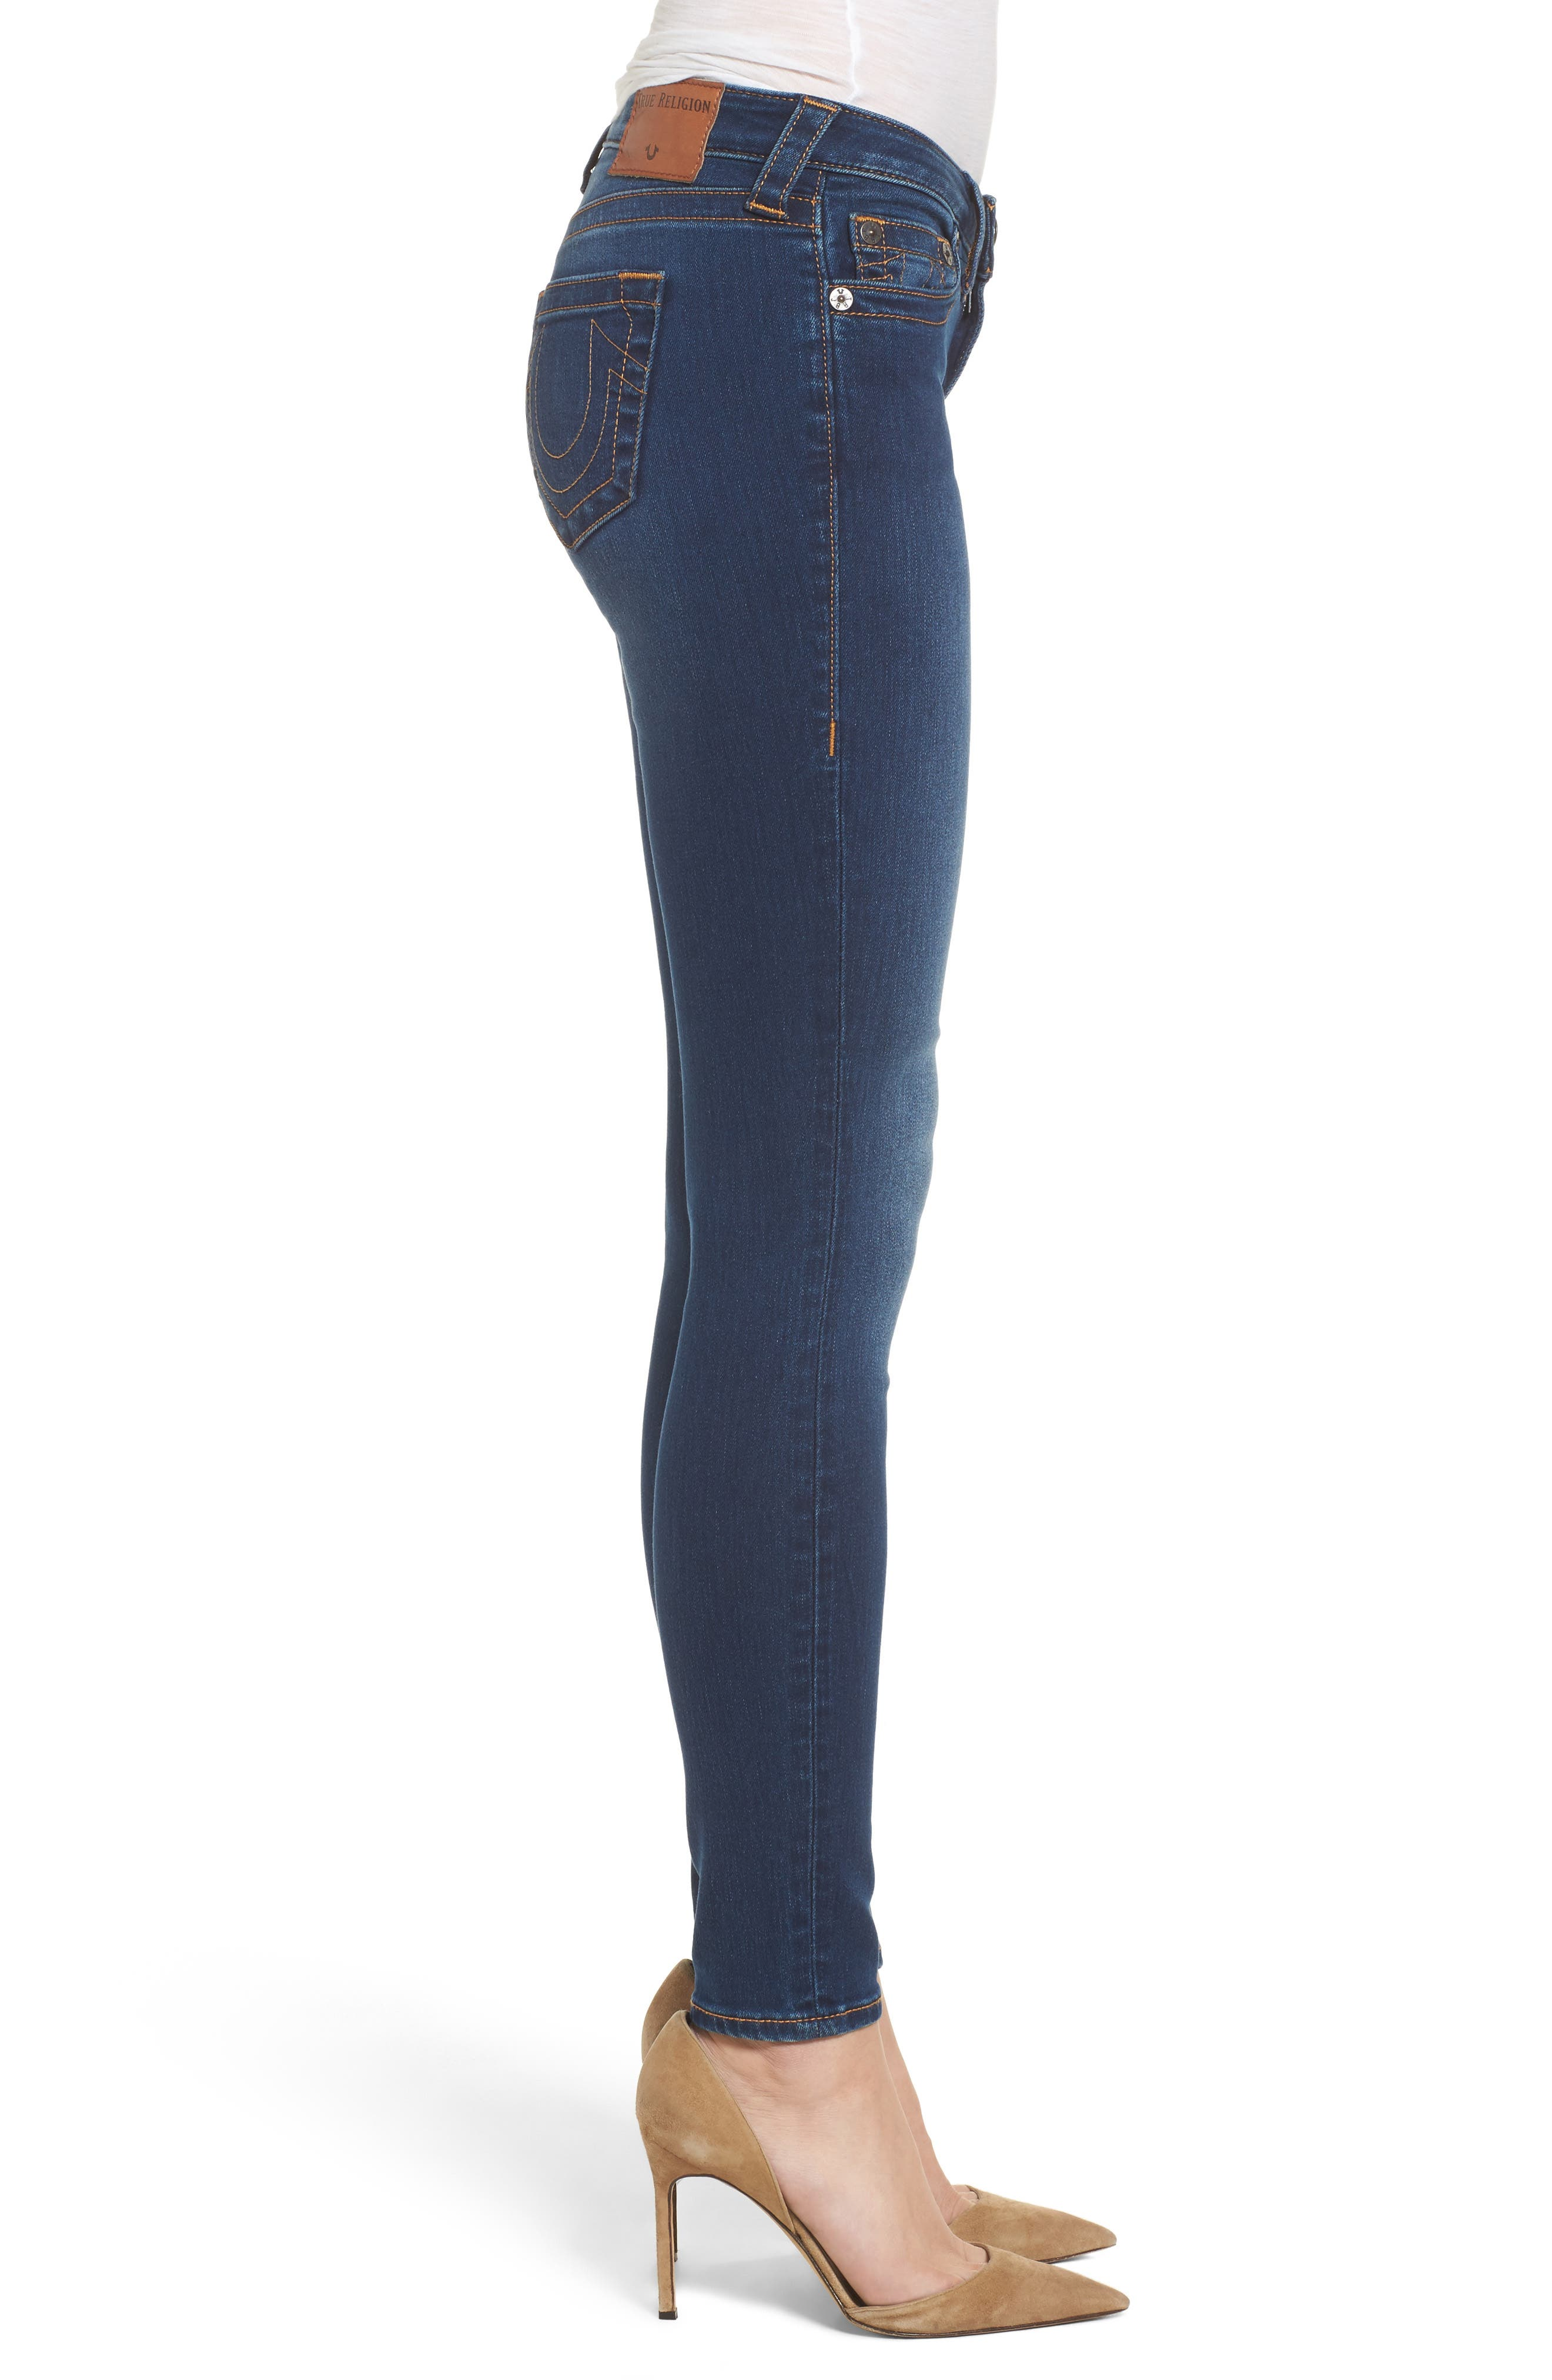 Halle Mid Rise Skinny Jeans,                             Alternate thumbnail 3, color,                             Lands End Indigo